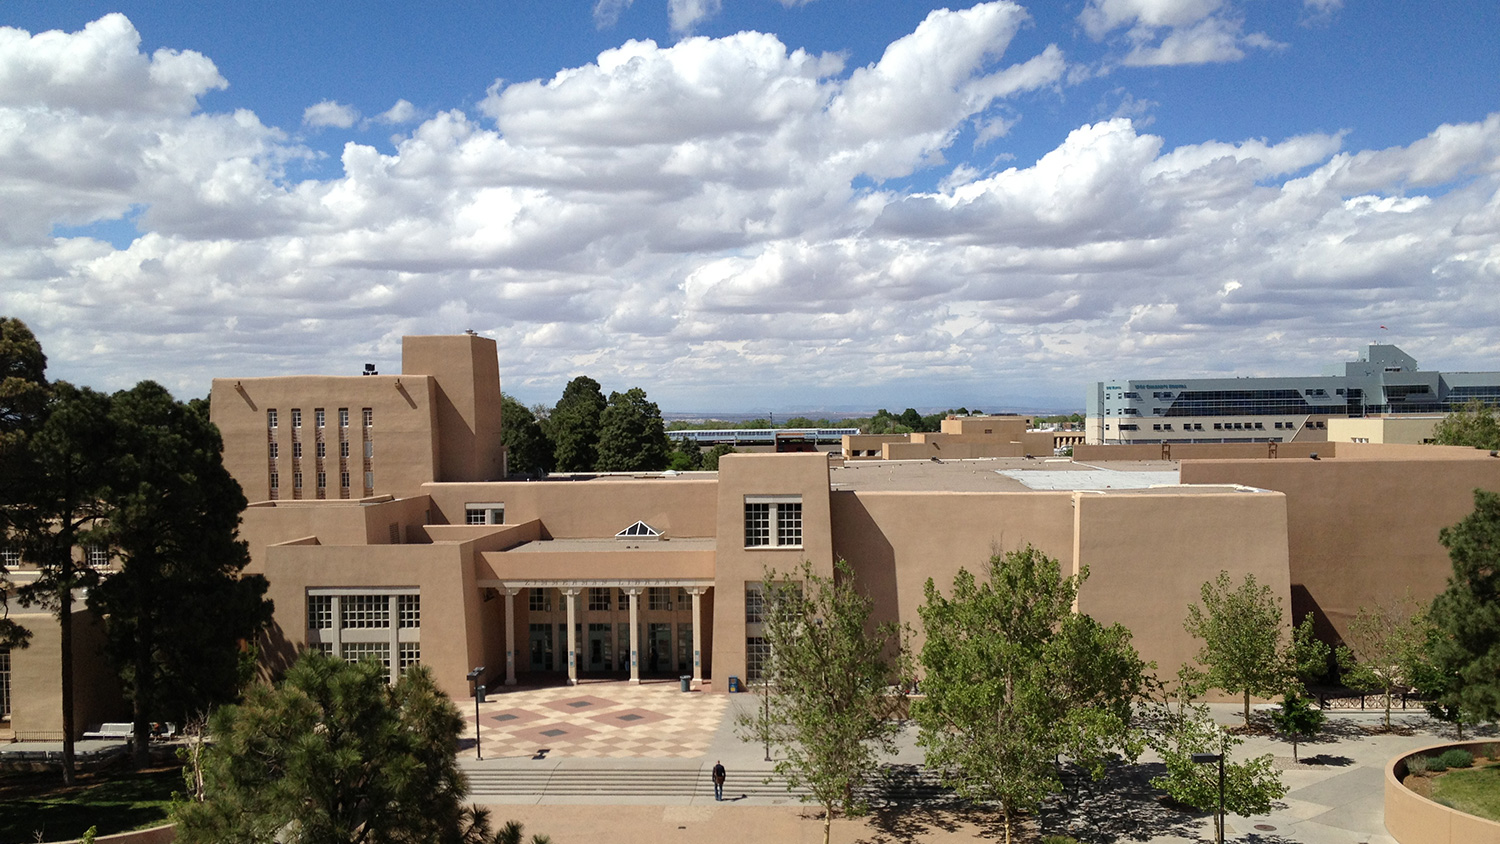 University of New Mexico Campus Building